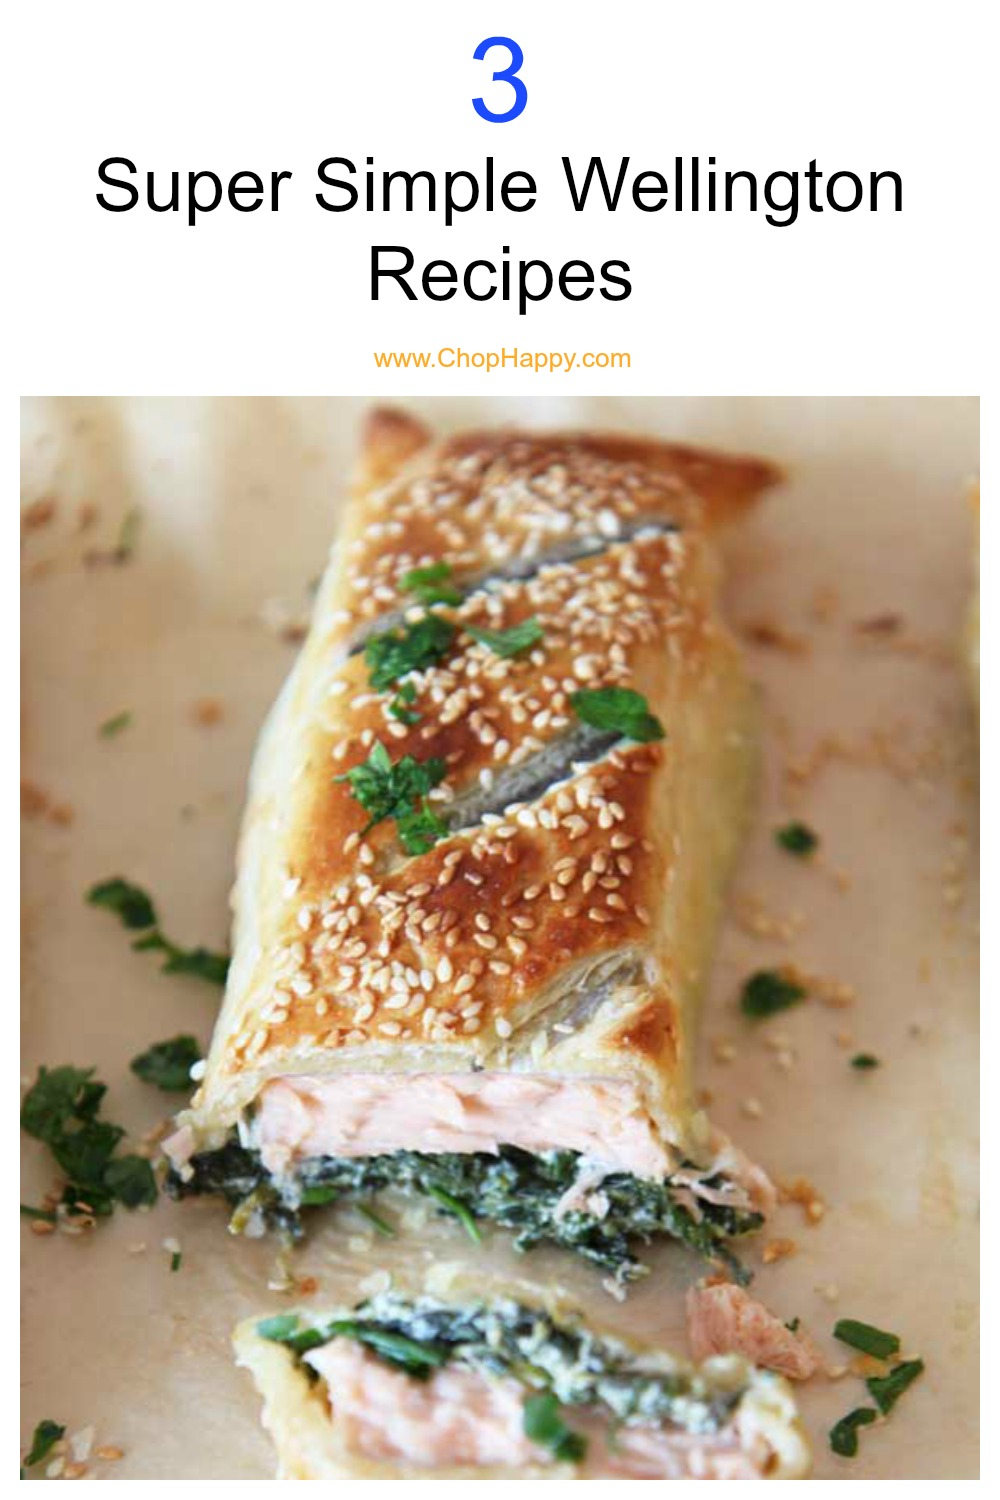 3 Simple Wellington Recipes all done on a sheet pan. All 3 dinner recipes are super easy and wrapped in buttery puff pastry. We have salmon, stuffed mushroom, and traditional beef Wellington. Perfect for holiday parties, dinner parties, or just family dinner time. Happy Cooking! www.ChopHappy.com #BeefWellington #sheetpandinner